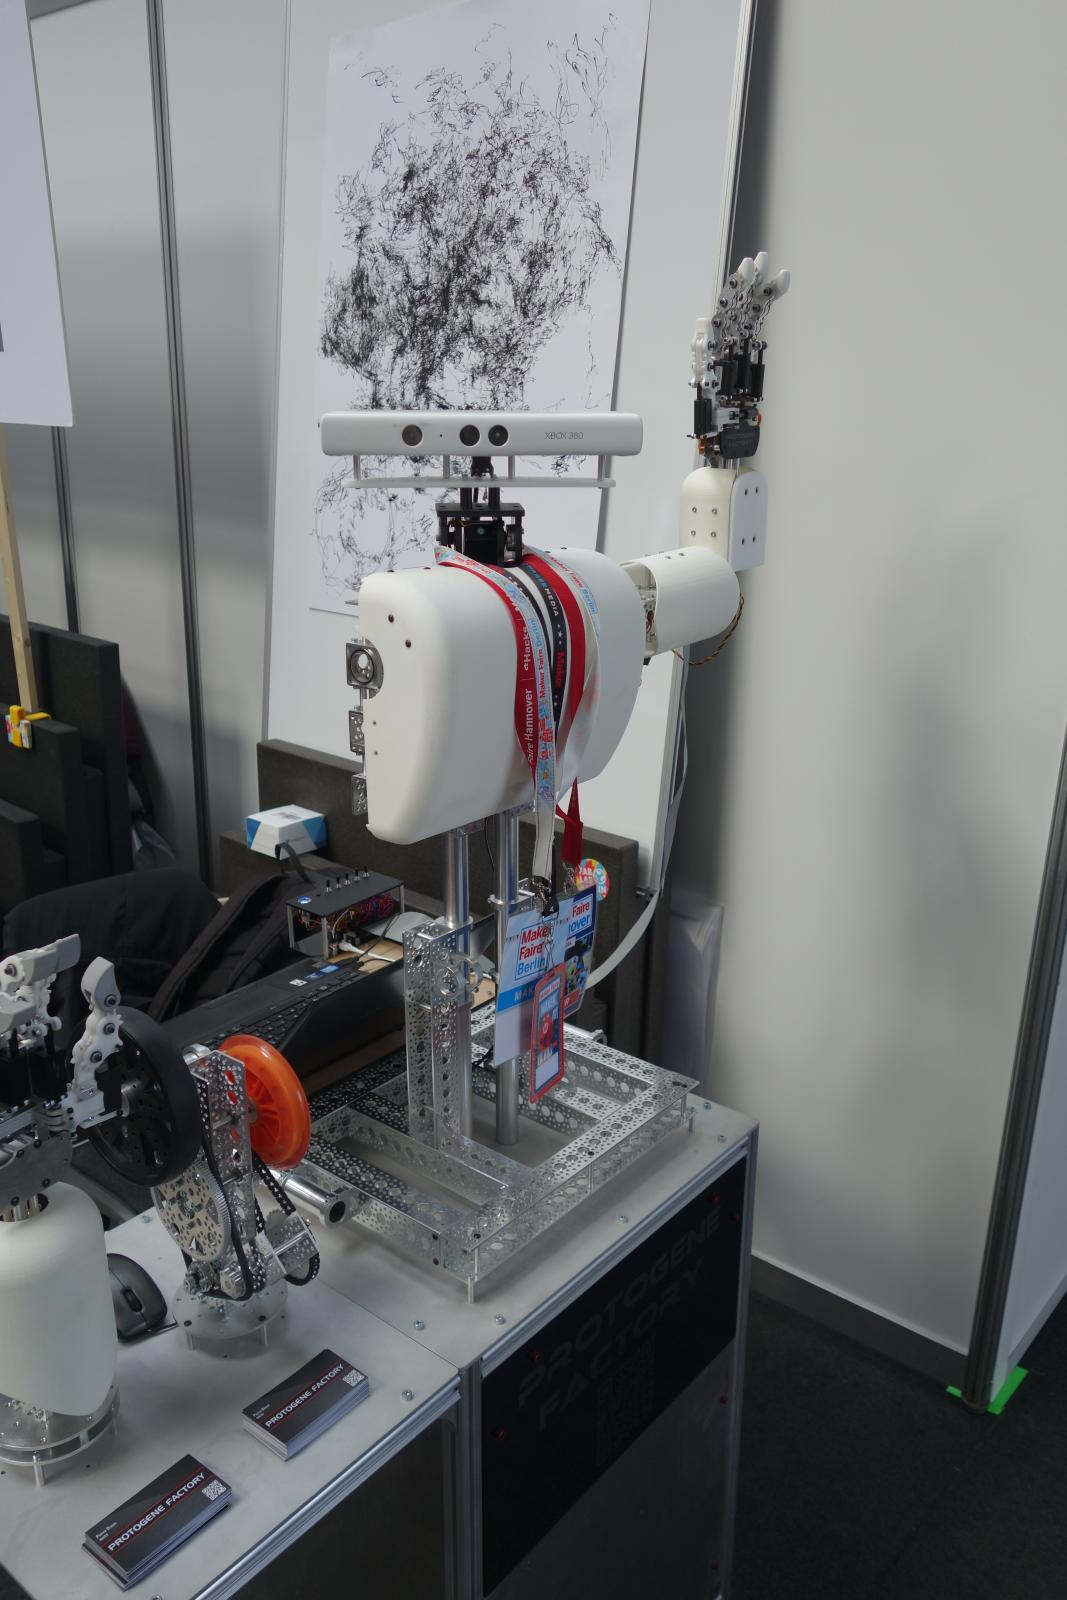 BioGrip 3.1 - Maker Faire Berlin - 1.jpg